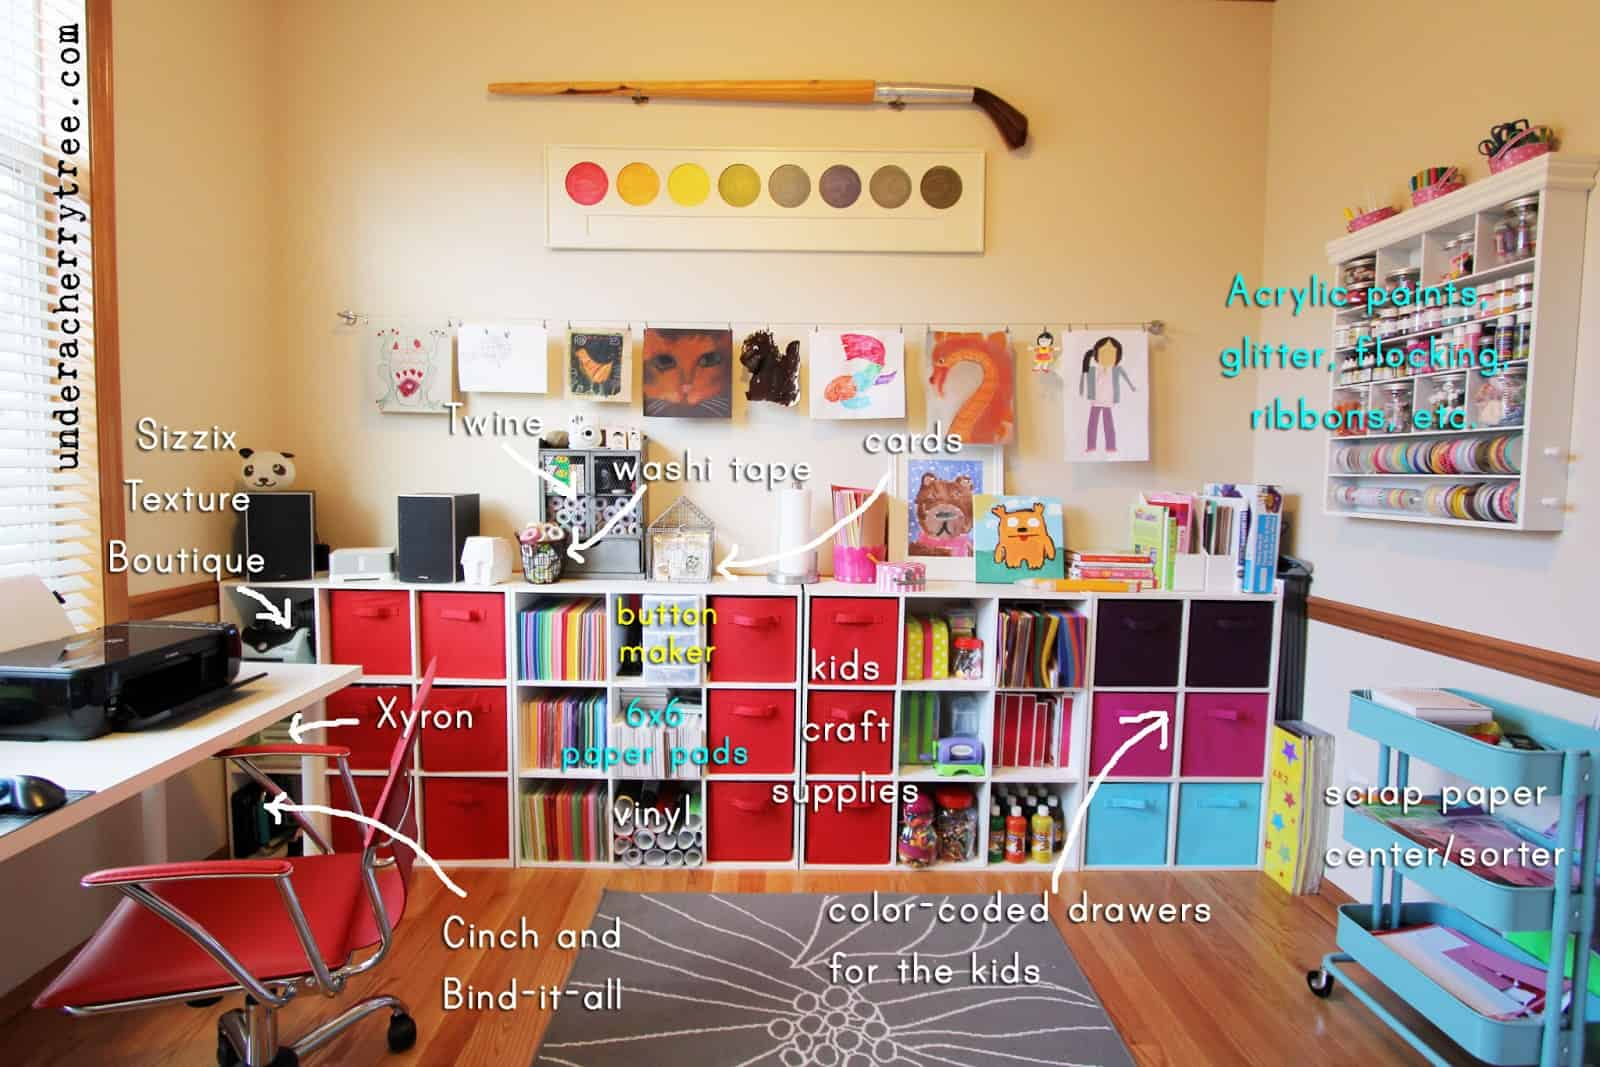 Sensible flow for kids' craft supplies in cubbies